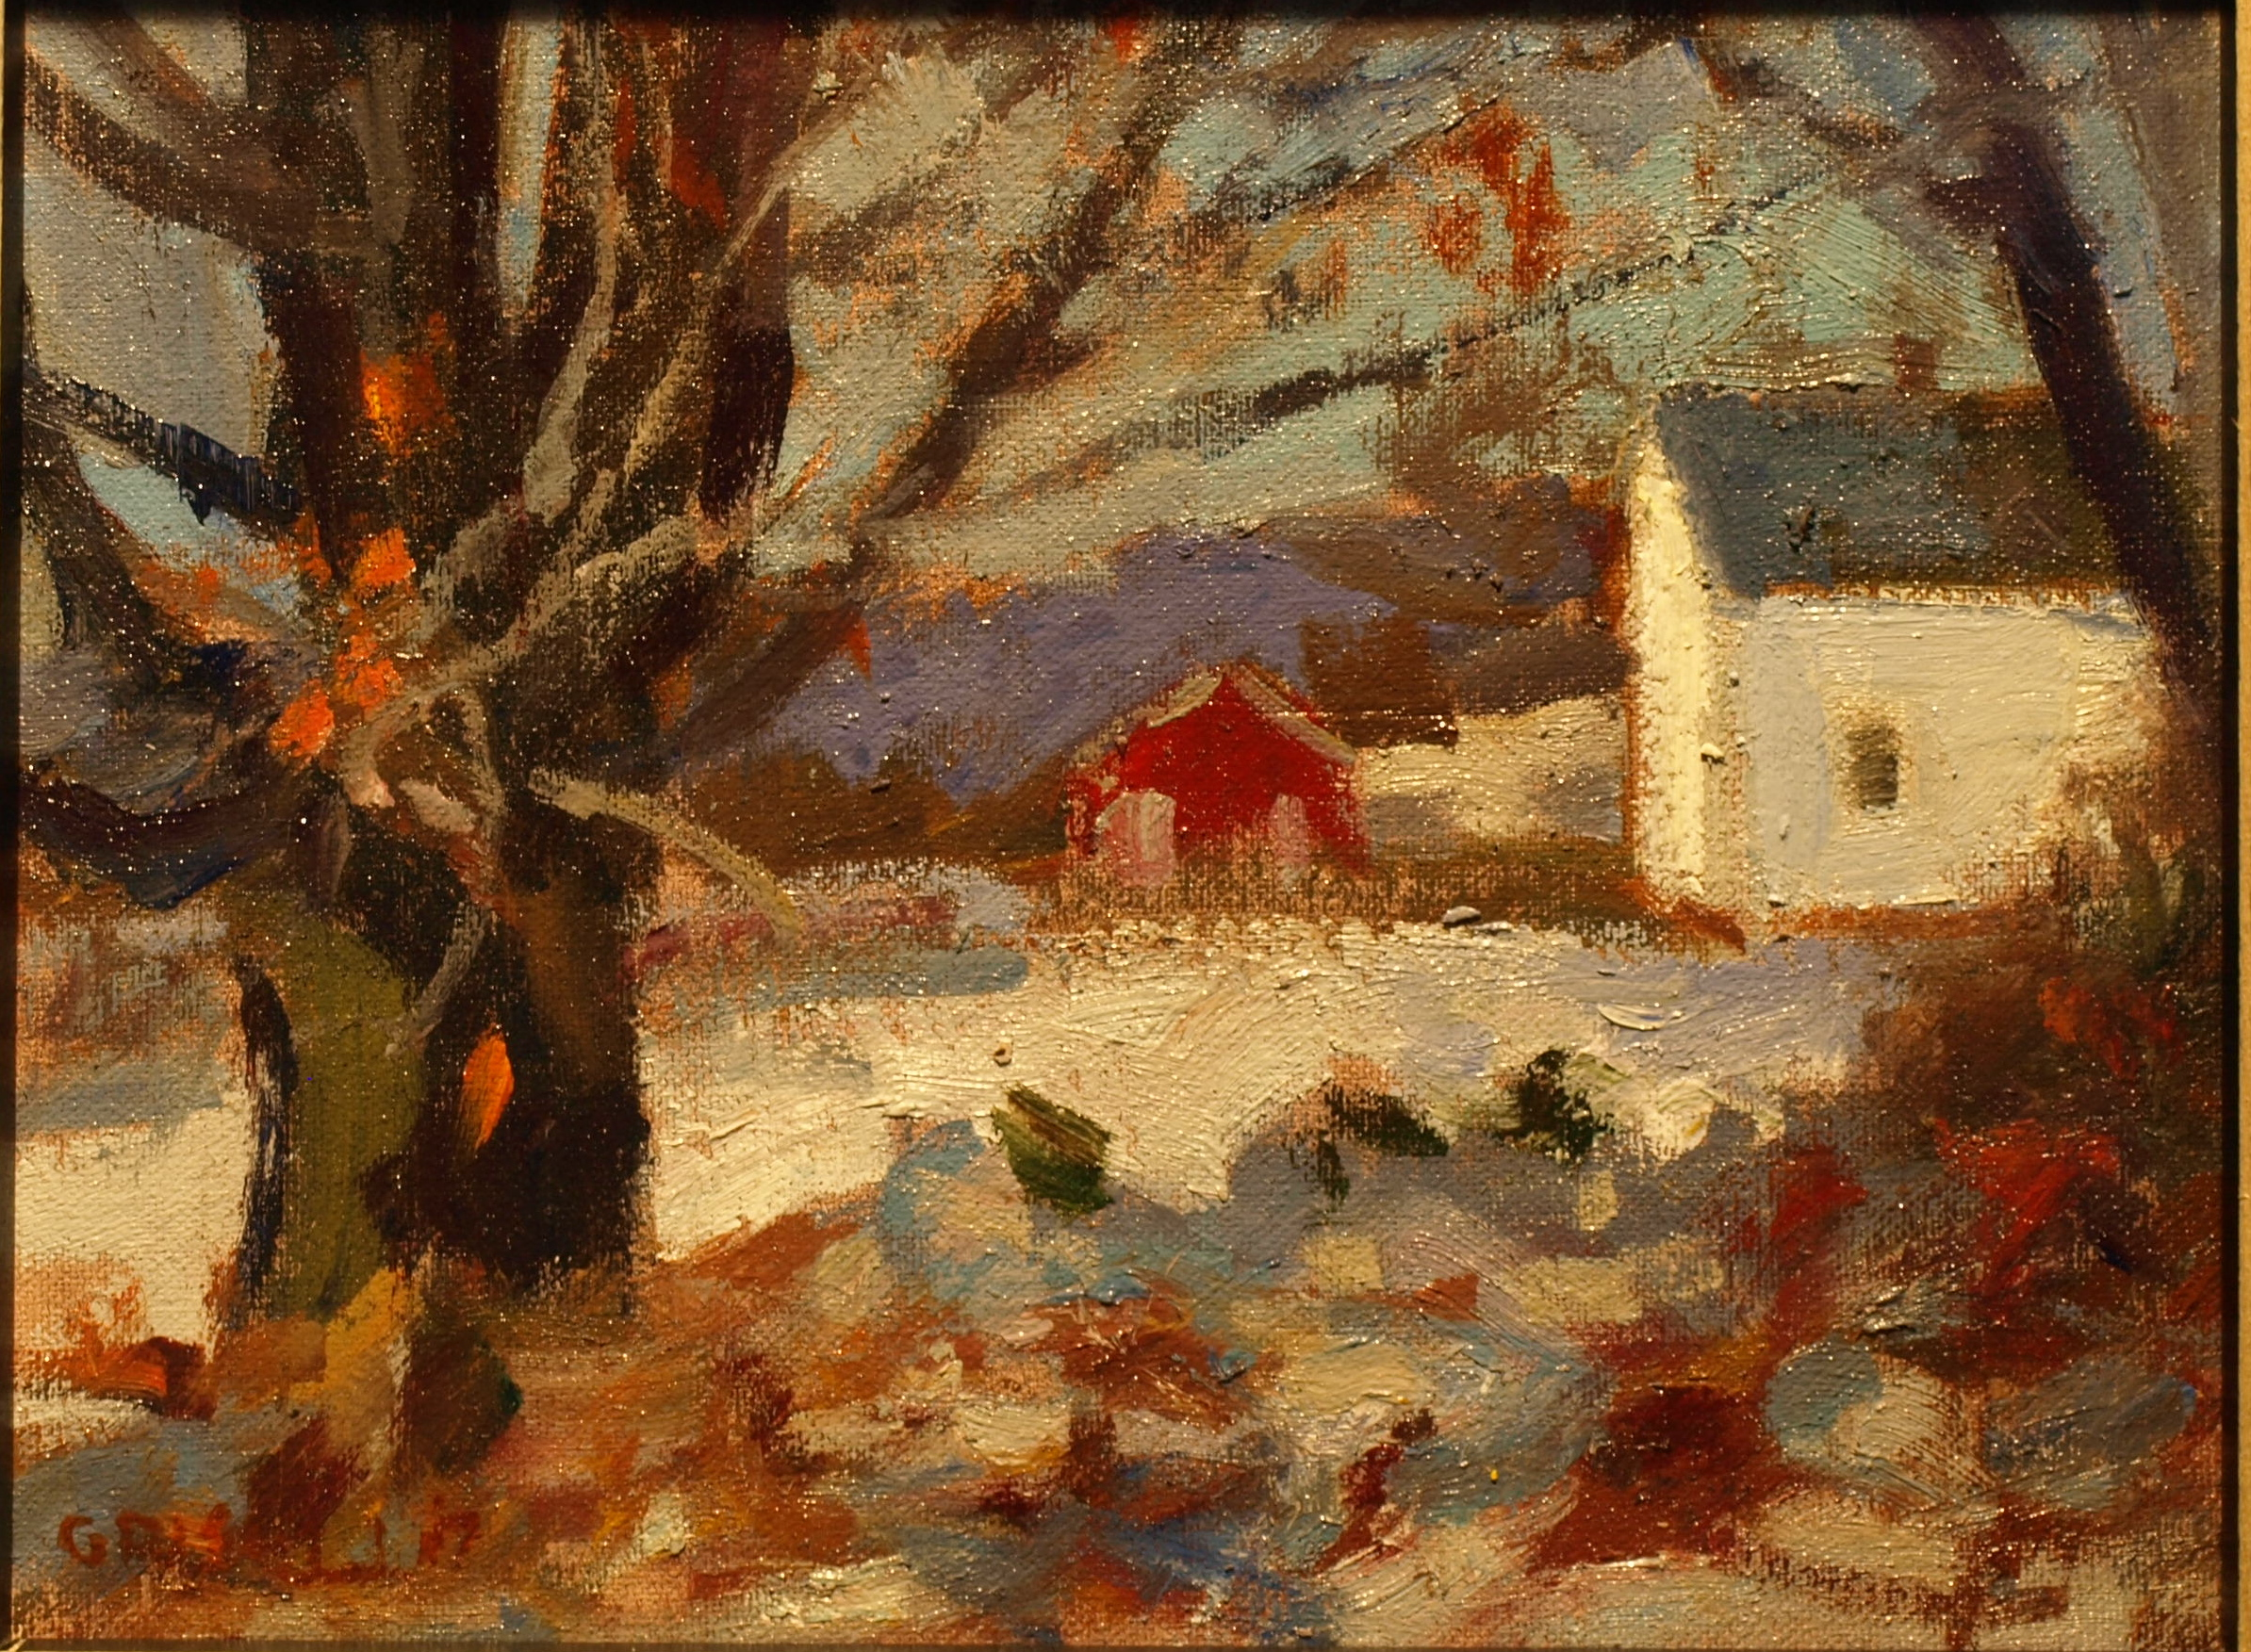 Bill Newton Farm, Oil on Canvas on Panel, 8 x 10 Inches, by Susan Grisell, $200